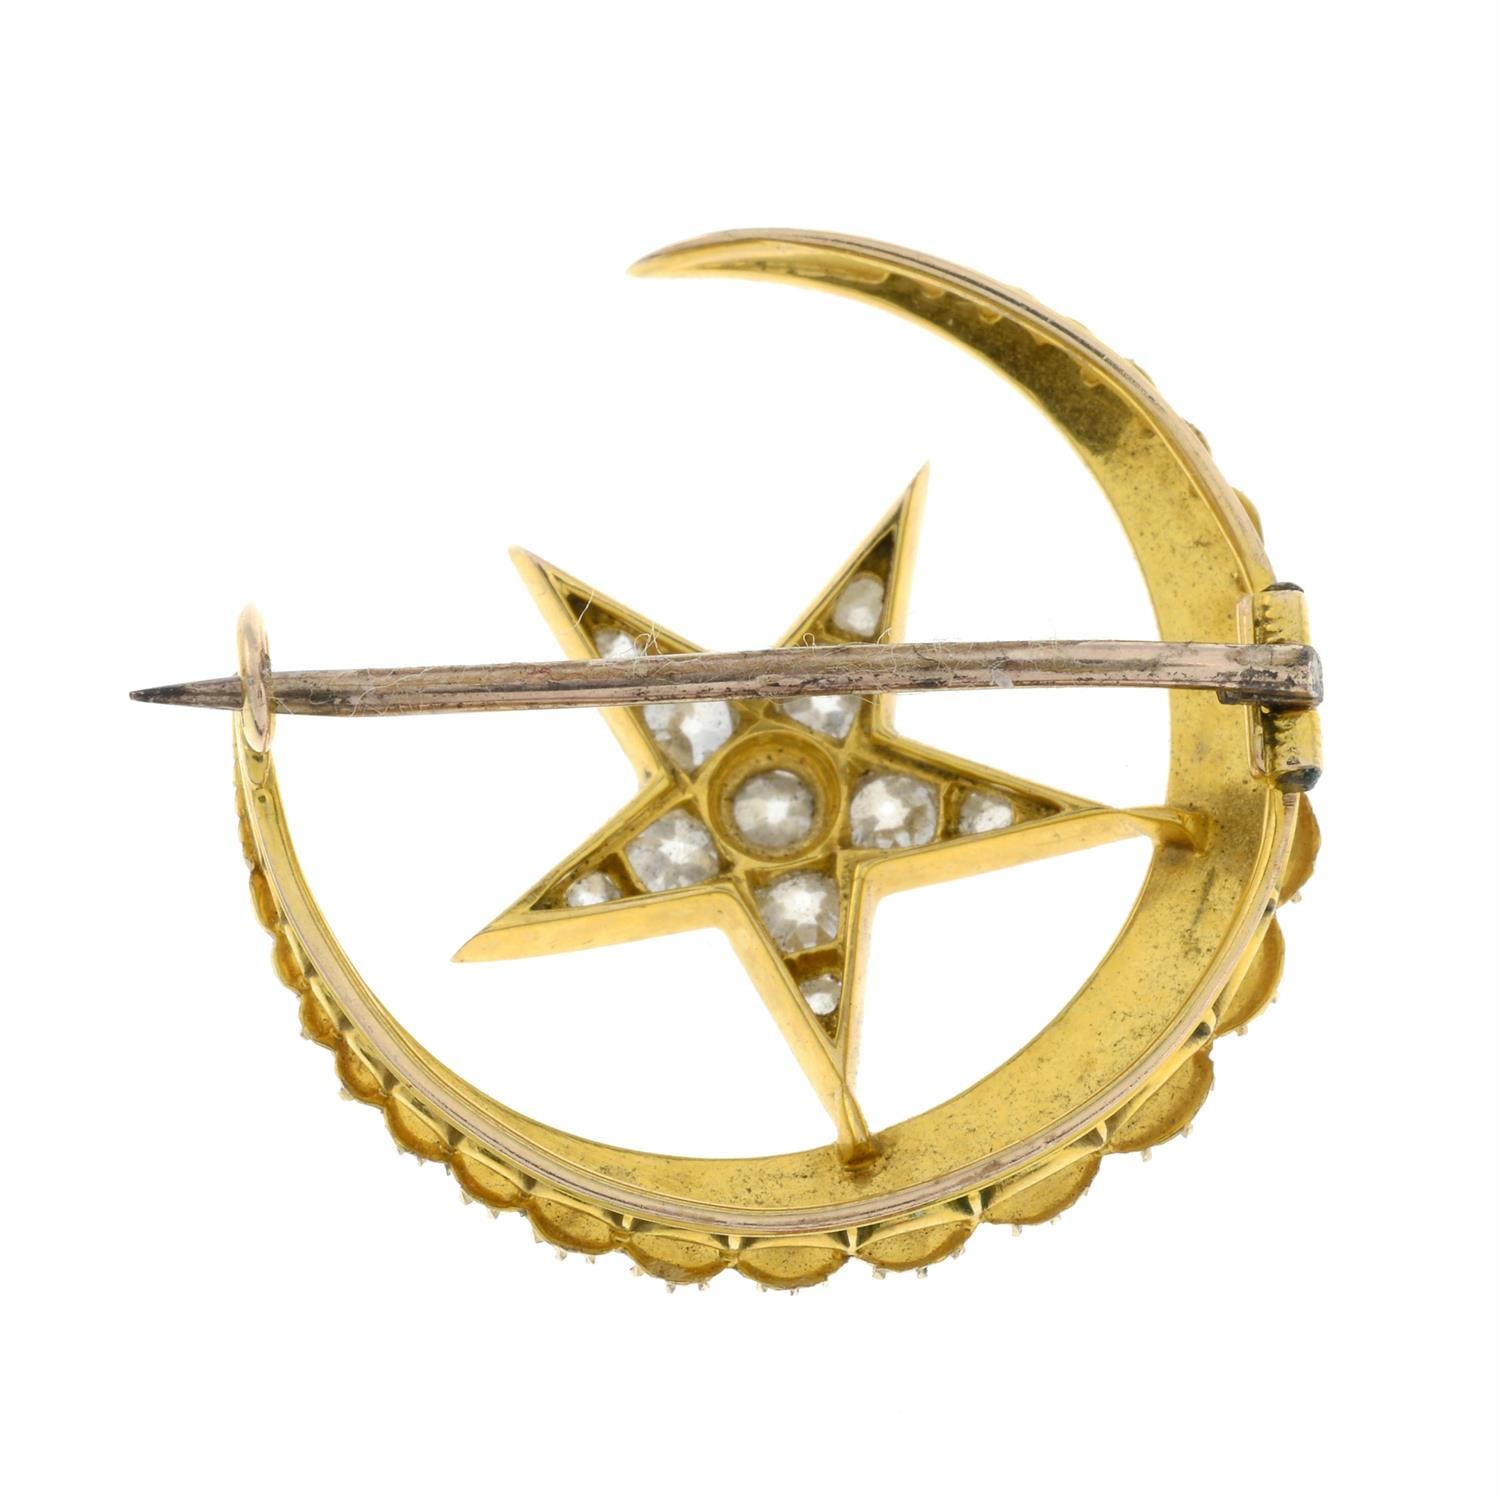 A late Victorian 15ct gold split pearl and old-cut diamond crescent moon and star brooch. - Image 3 of 5